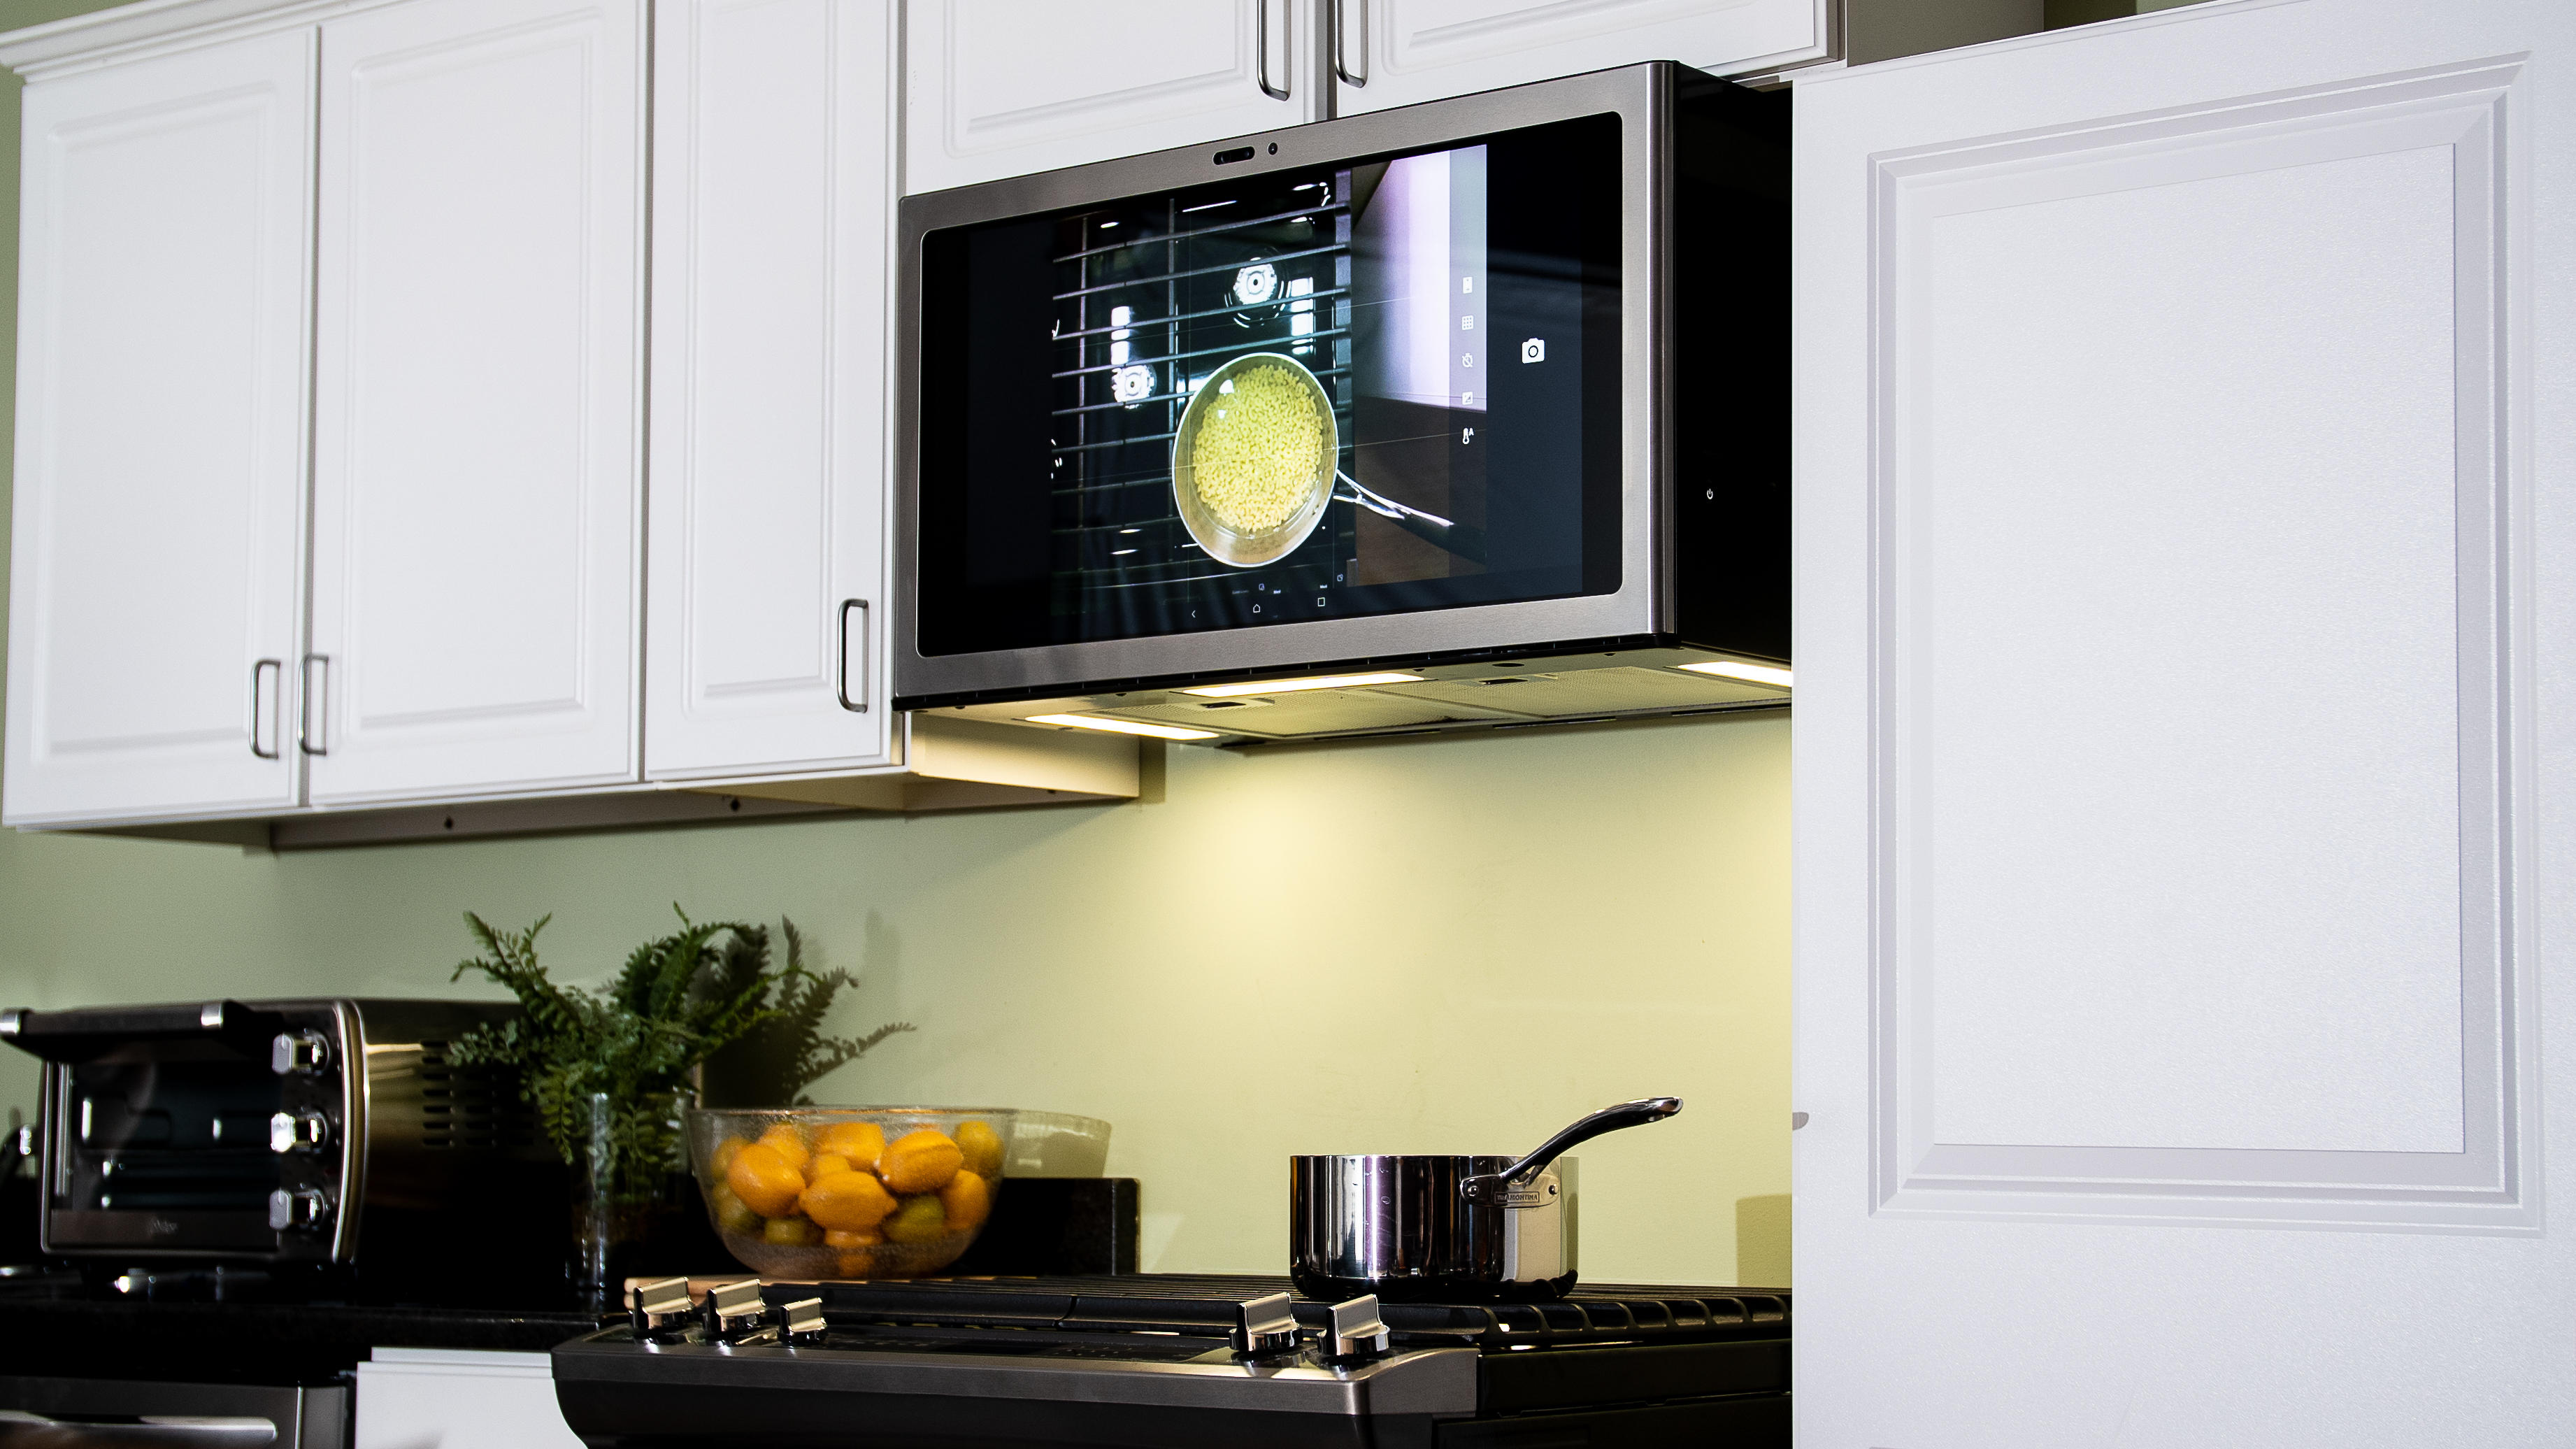 This 27 Inch Android Touchscreen Is Coming For Your Kitchen Cnet